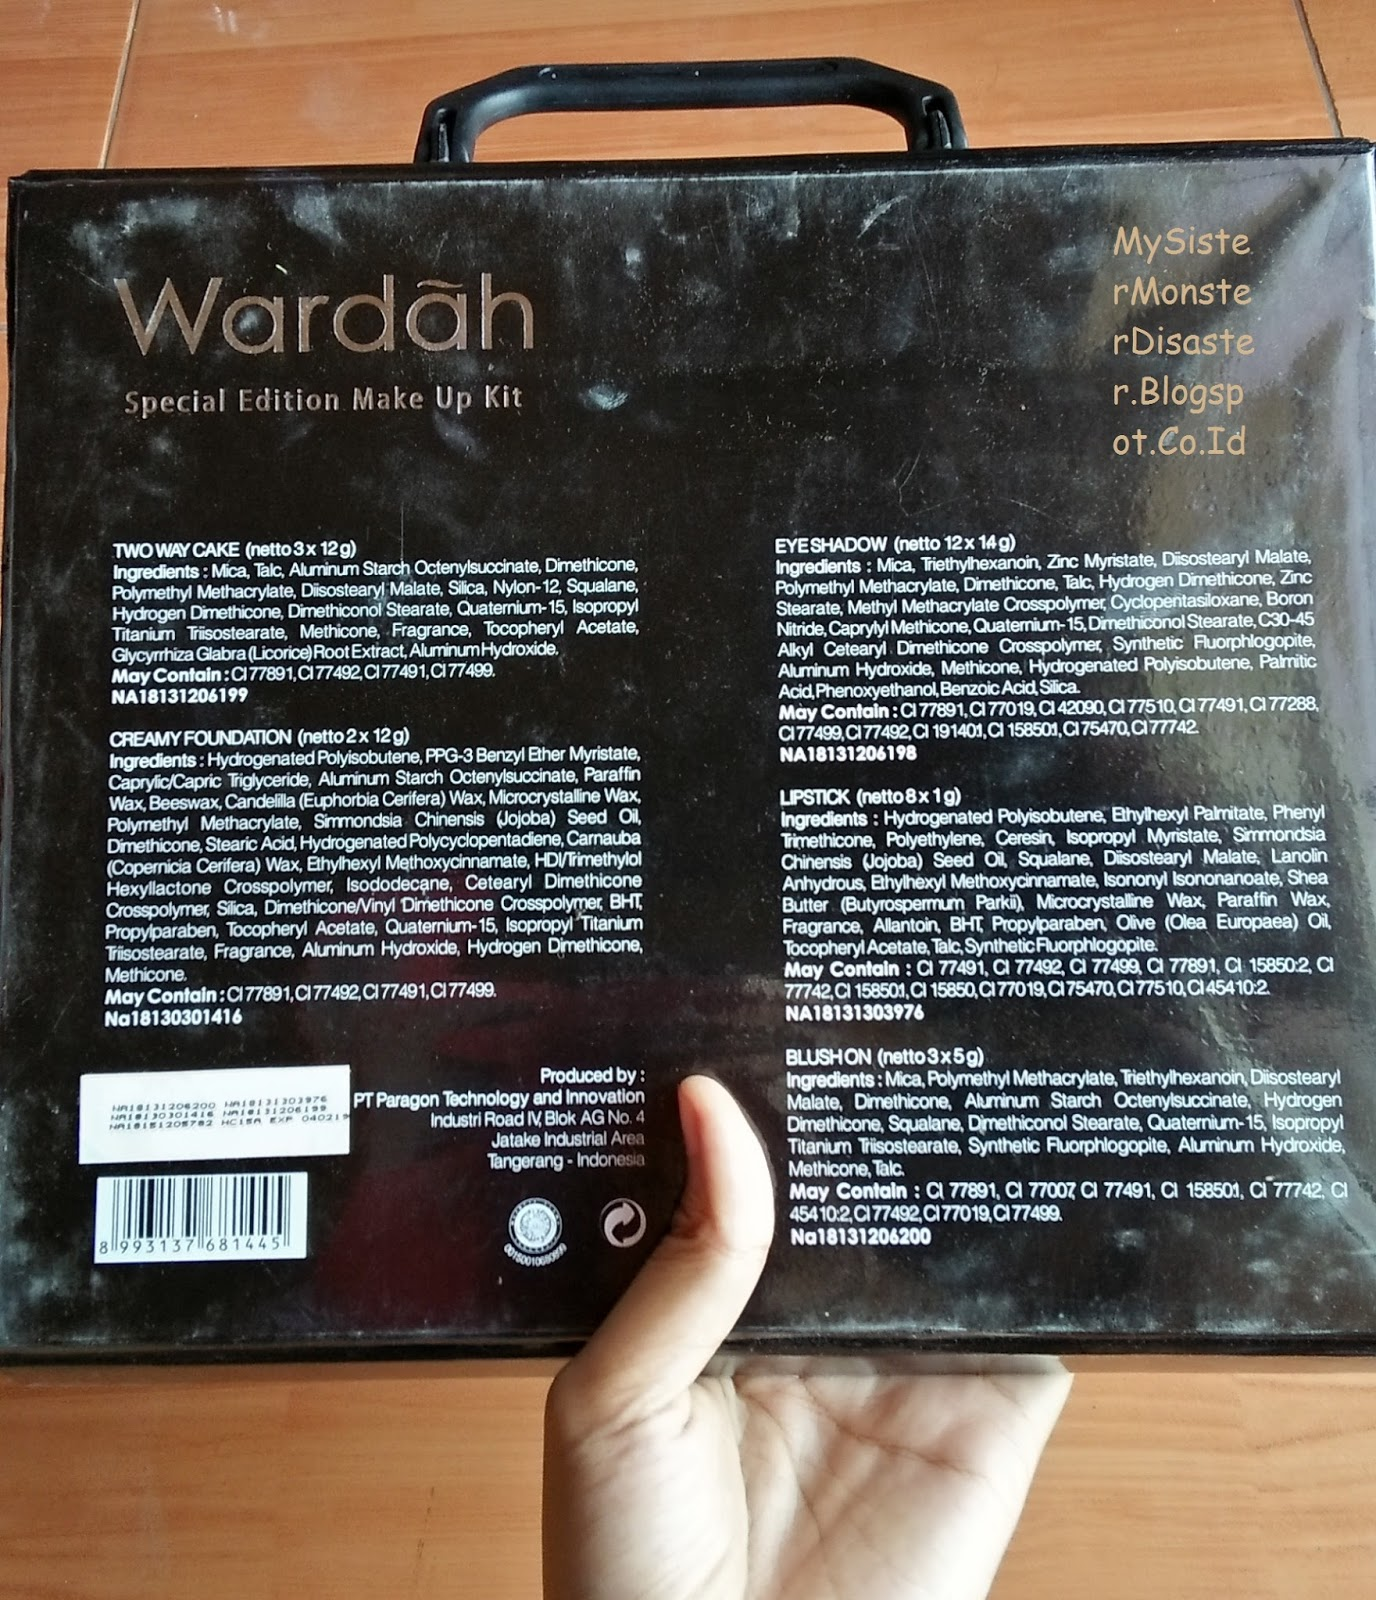 (REVIEW) Wardah Spesial Edition Makeup Kit